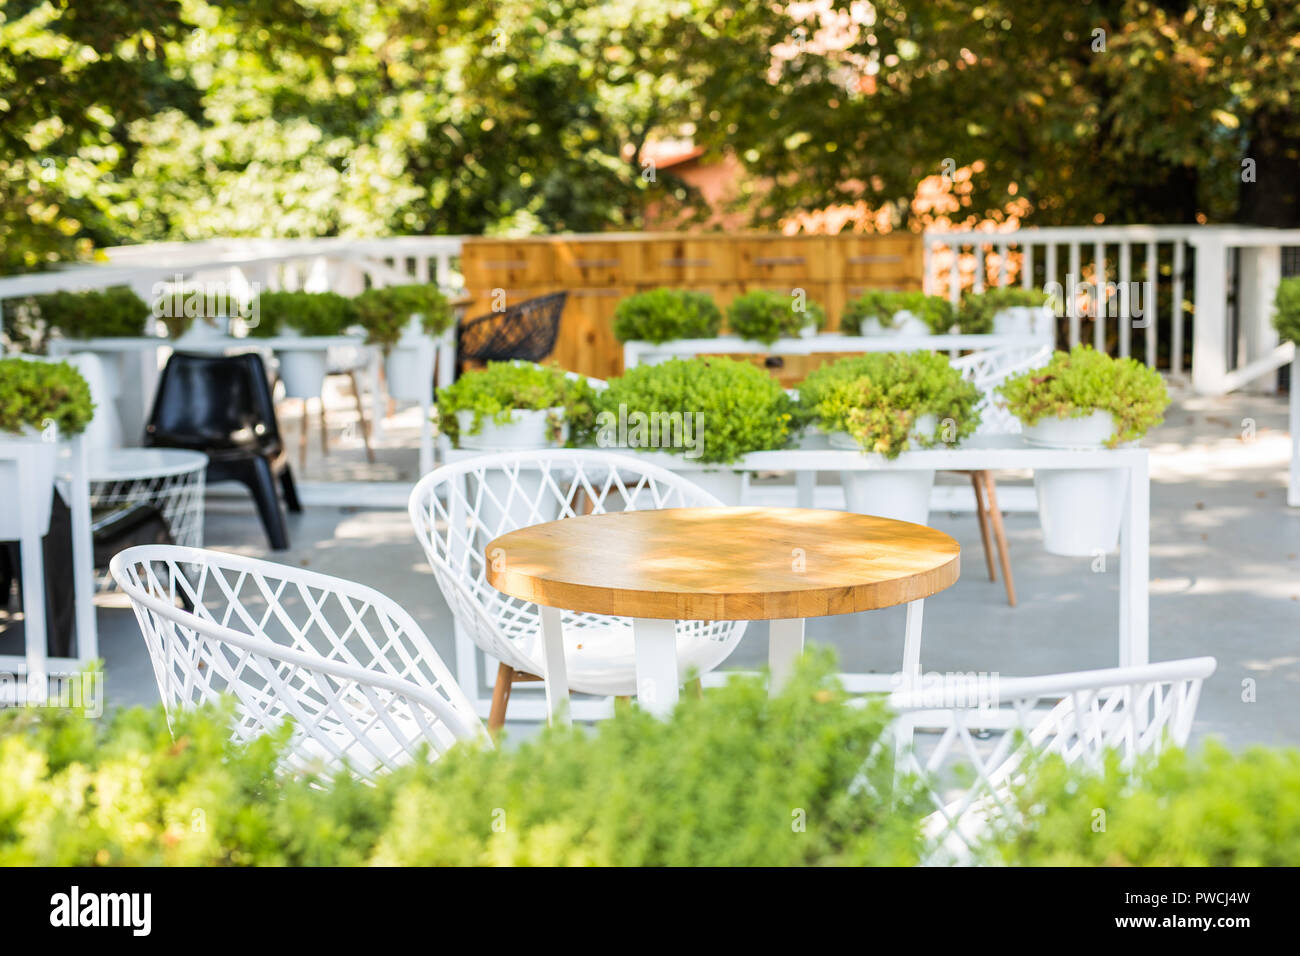 Blur Cafe Restaurant On Outdoor Use For Background Stock Photo Alamy